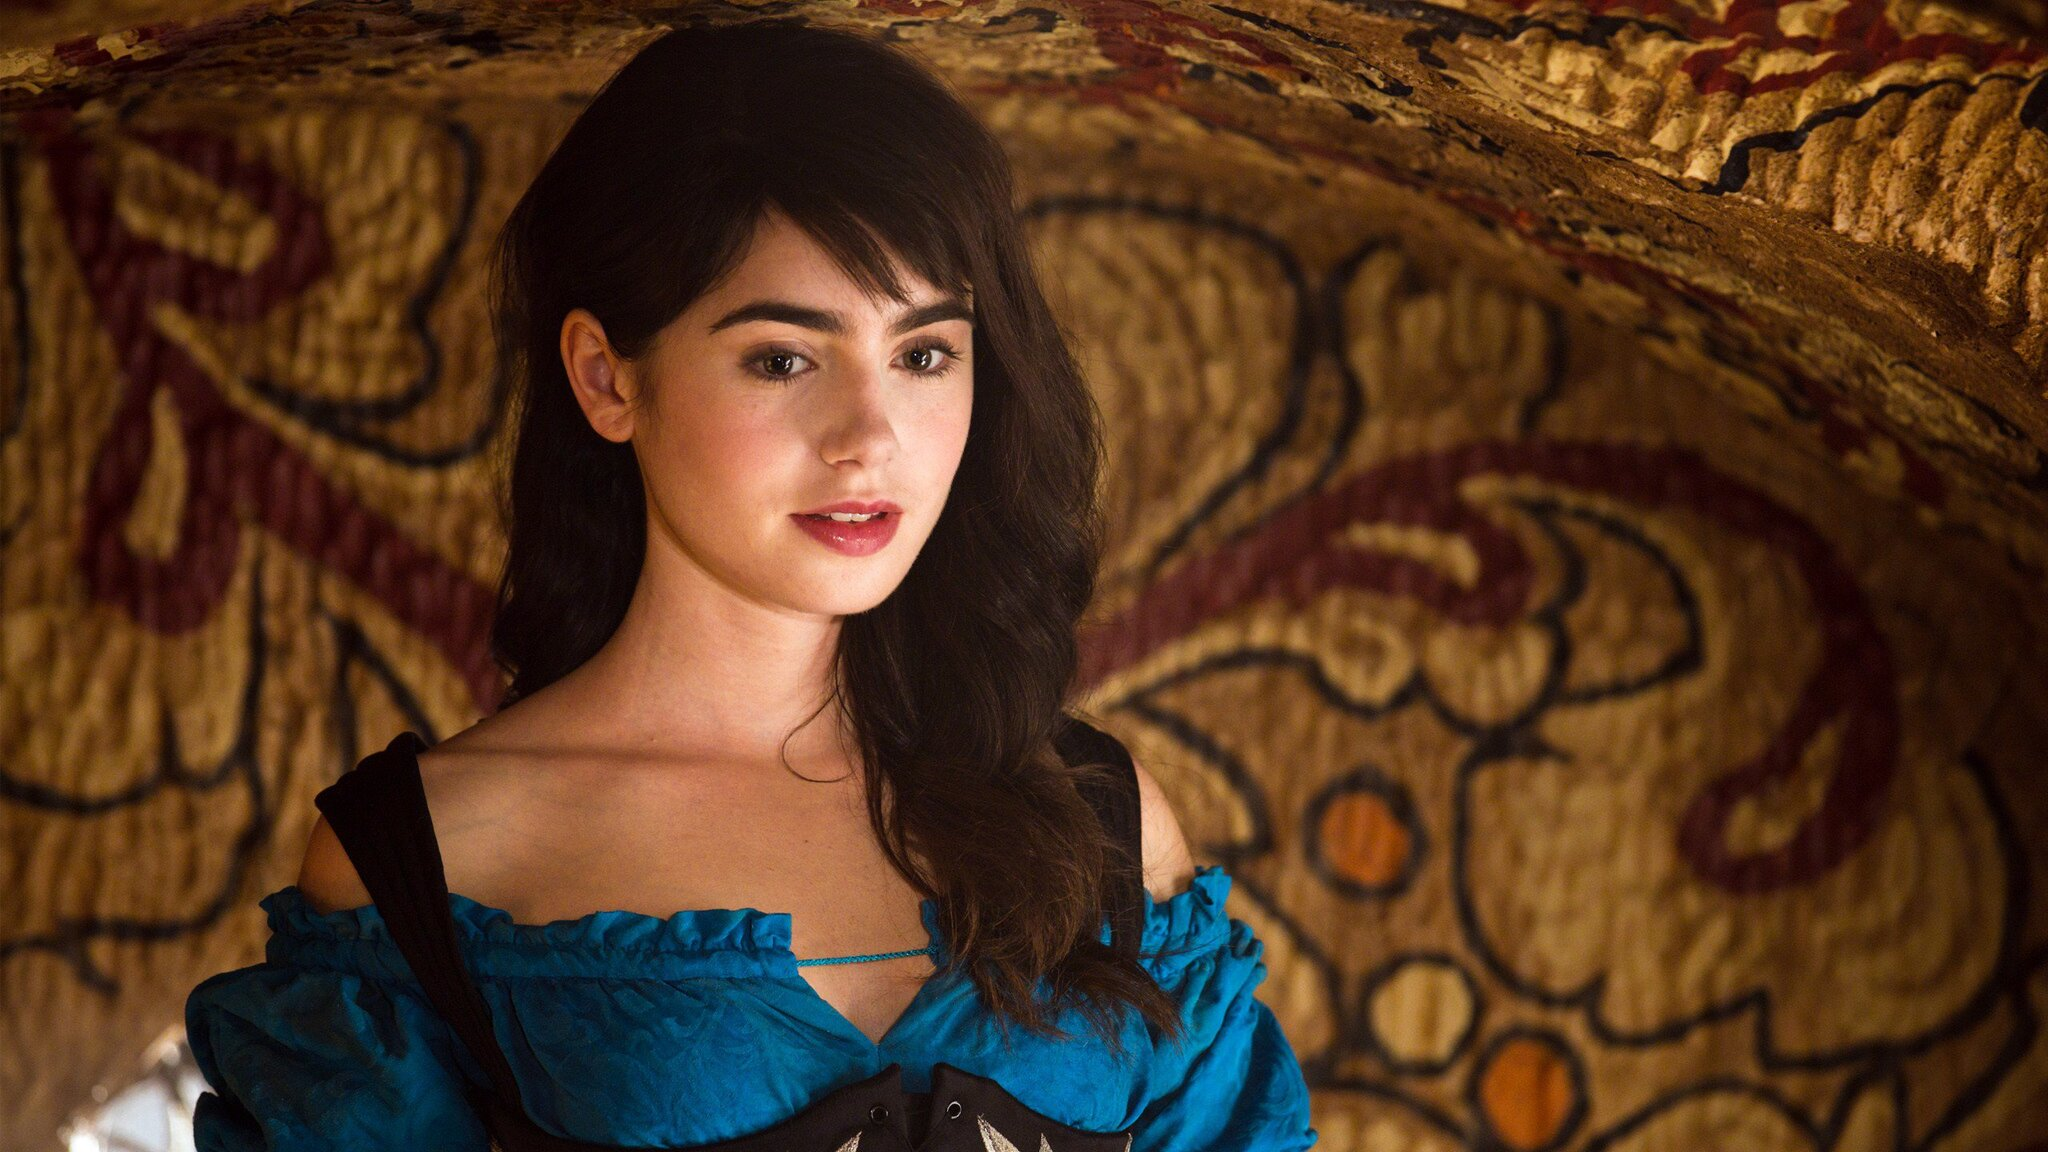 2048x1152 Mirror Mirror Lily Collins 2048x1152 Resolution ...